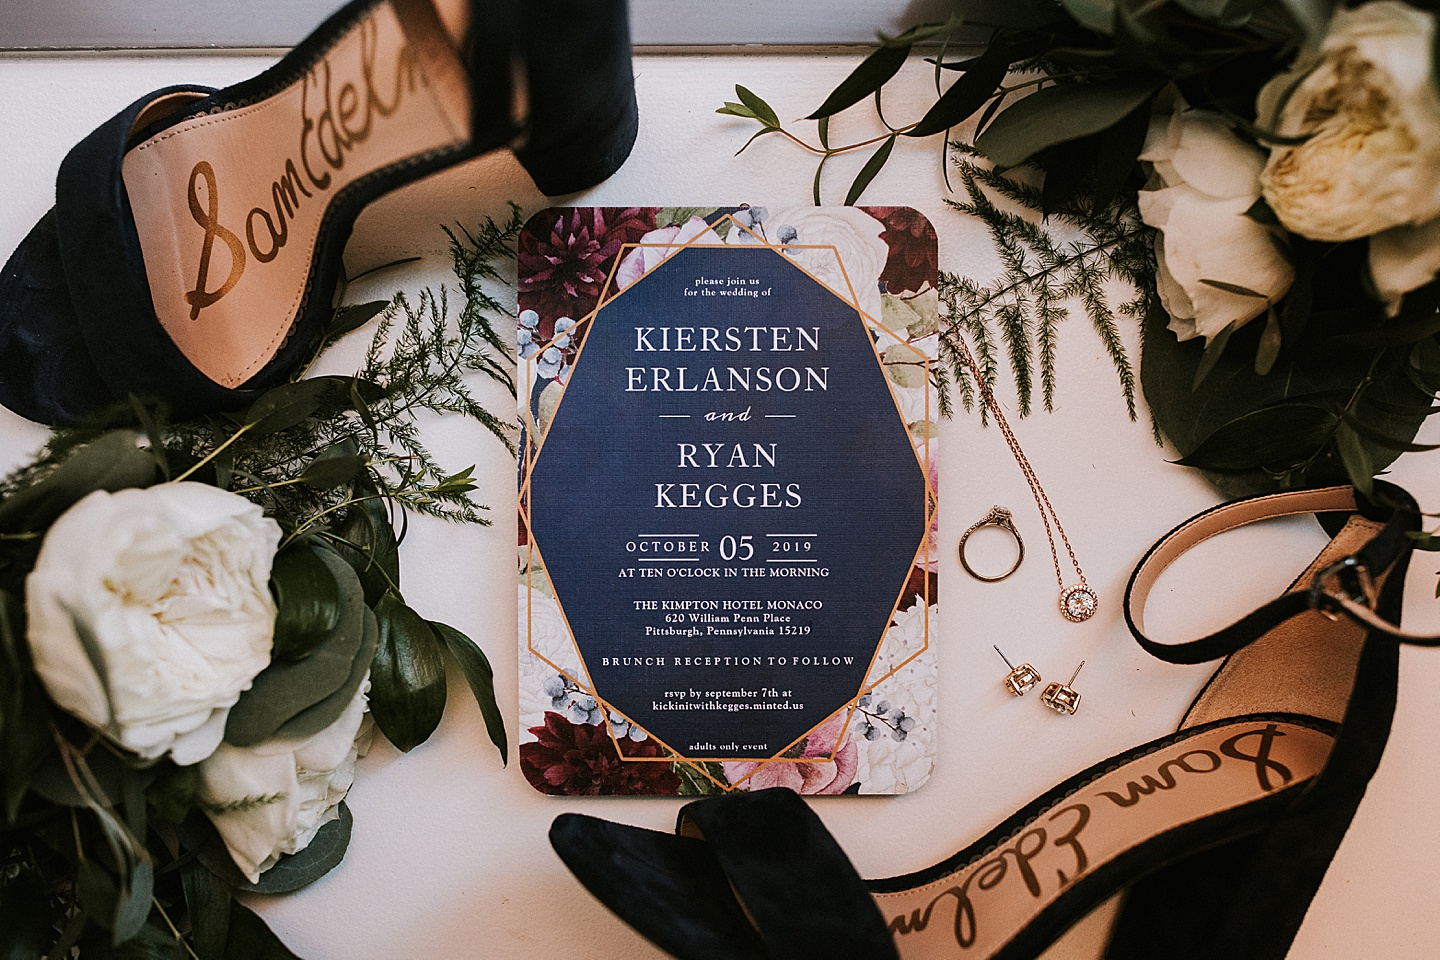 Wedding invitation styling for photos